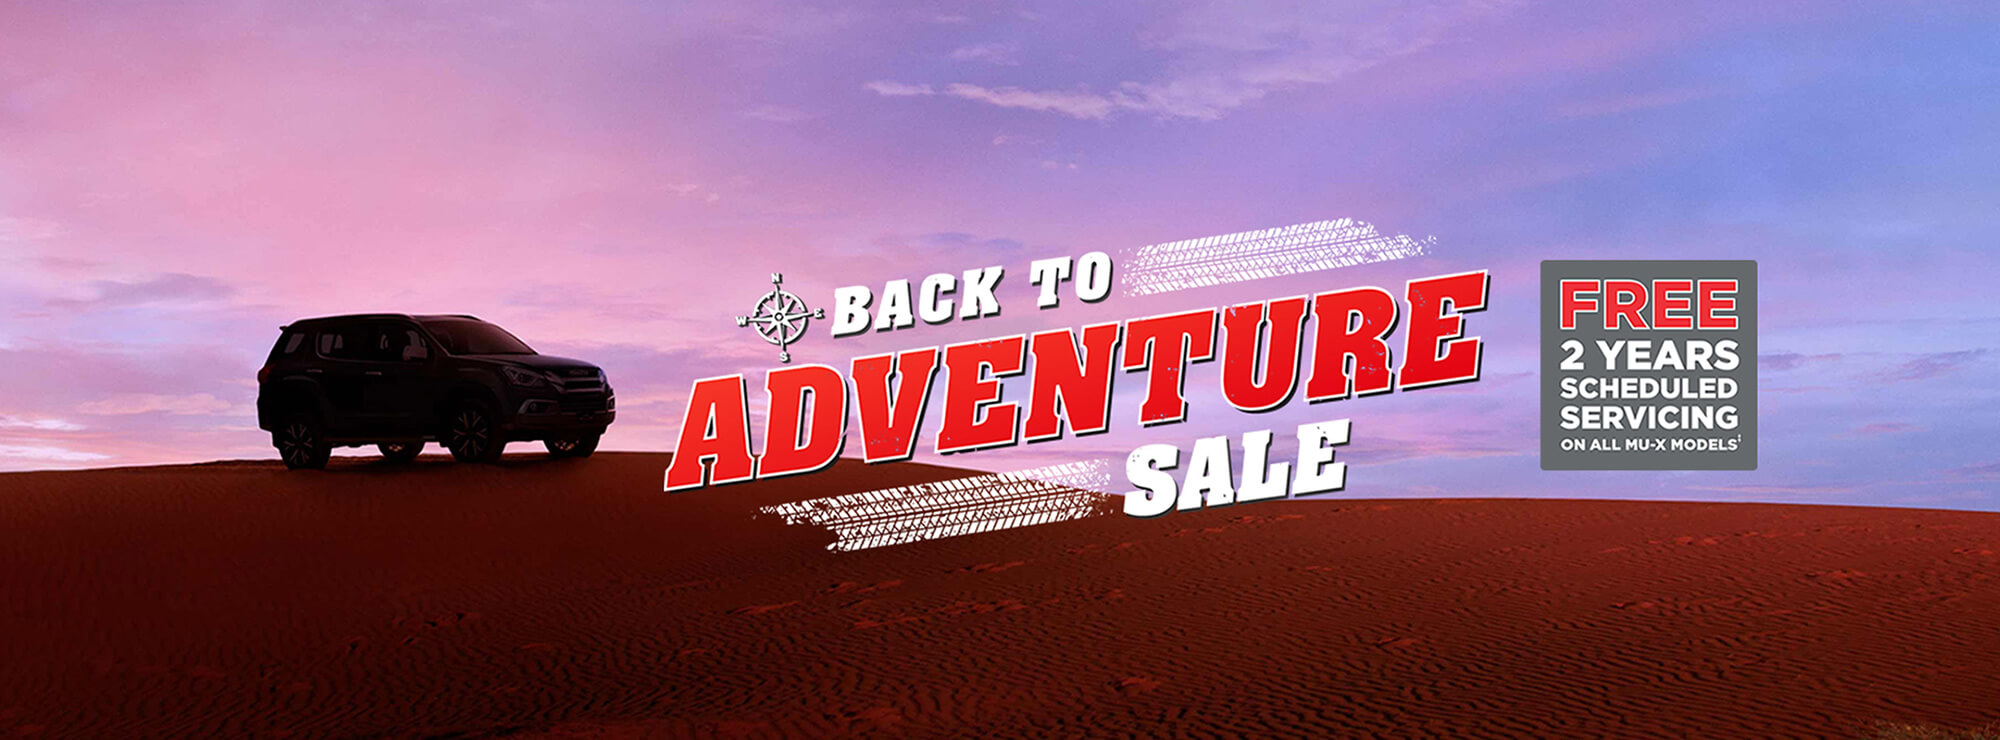 Isuzu UTE Back to Adventure Sale